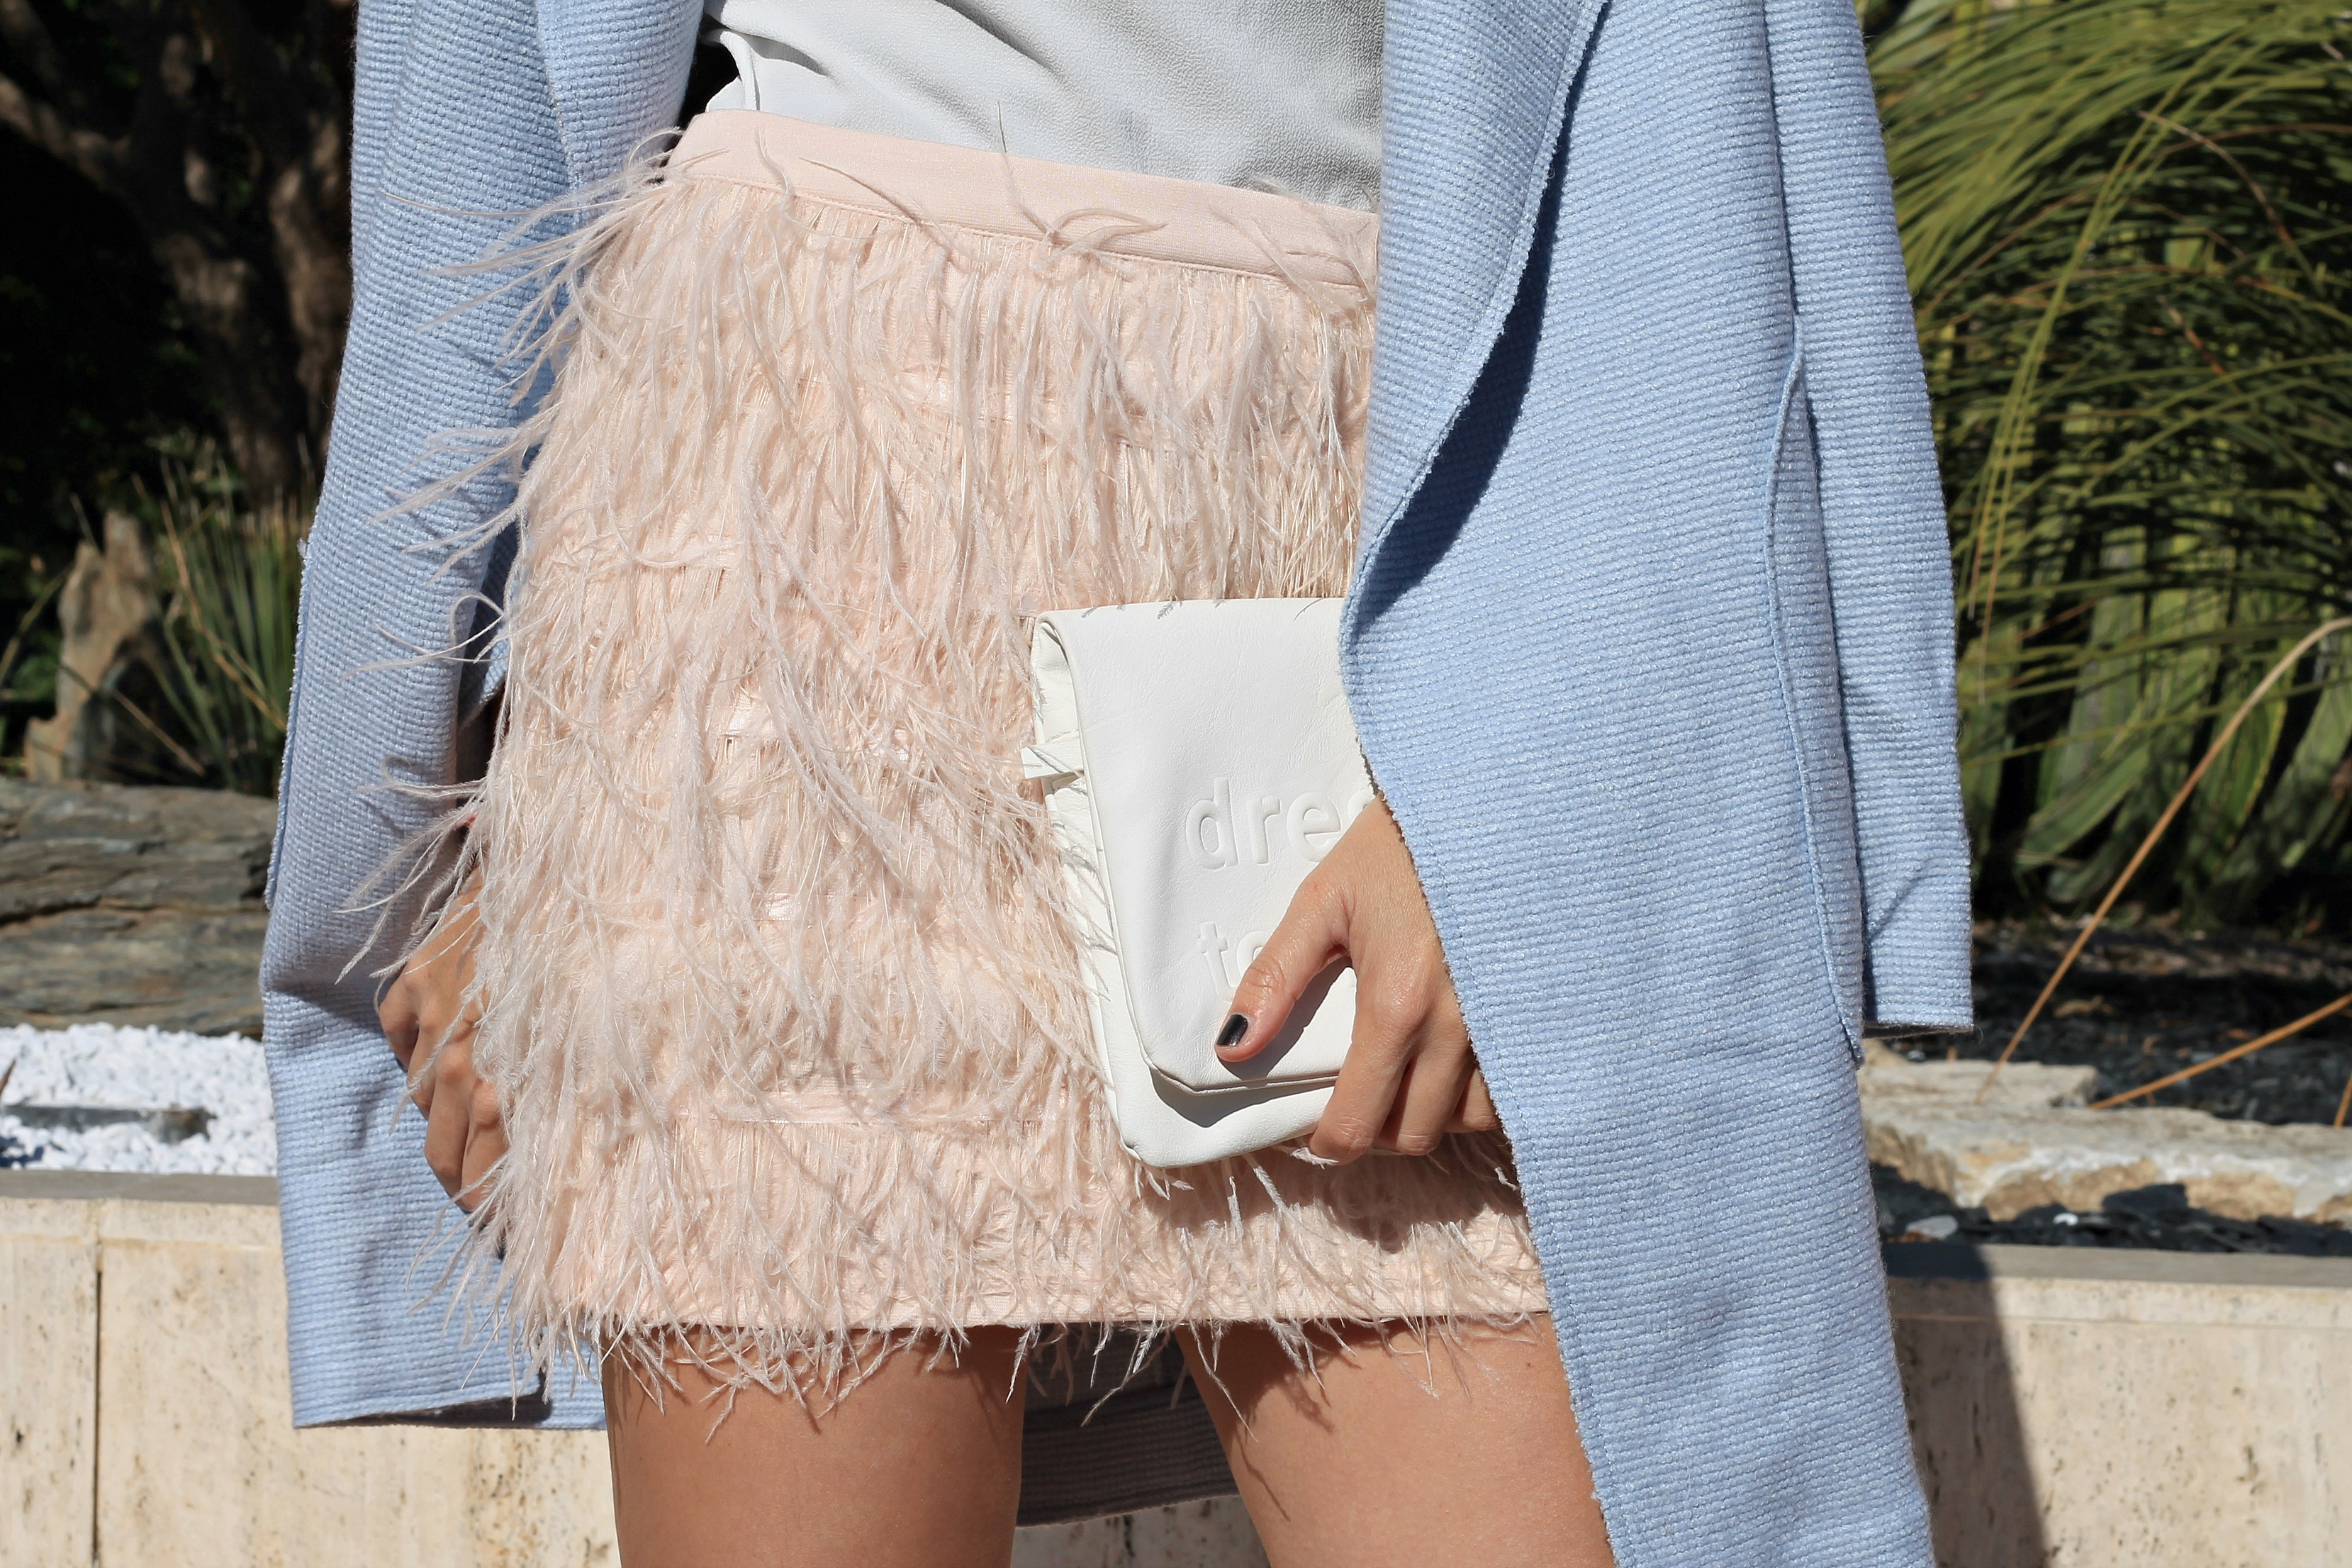 Sul potere dell'autoironia, theladycracy.it, elisa bellino, fashion blog, fashion blogger italiane, fashion blogger famose, gonna piume, feathers skirt, feathers outfit, montecarlo blogger, chic look, pastel lovers, outfit pastello, top fashion blogger italia, elsa maxwell, tendenze moda primavera 2016, tendenze moda primavera estate 2016, spring summer 2016 outfit blogger